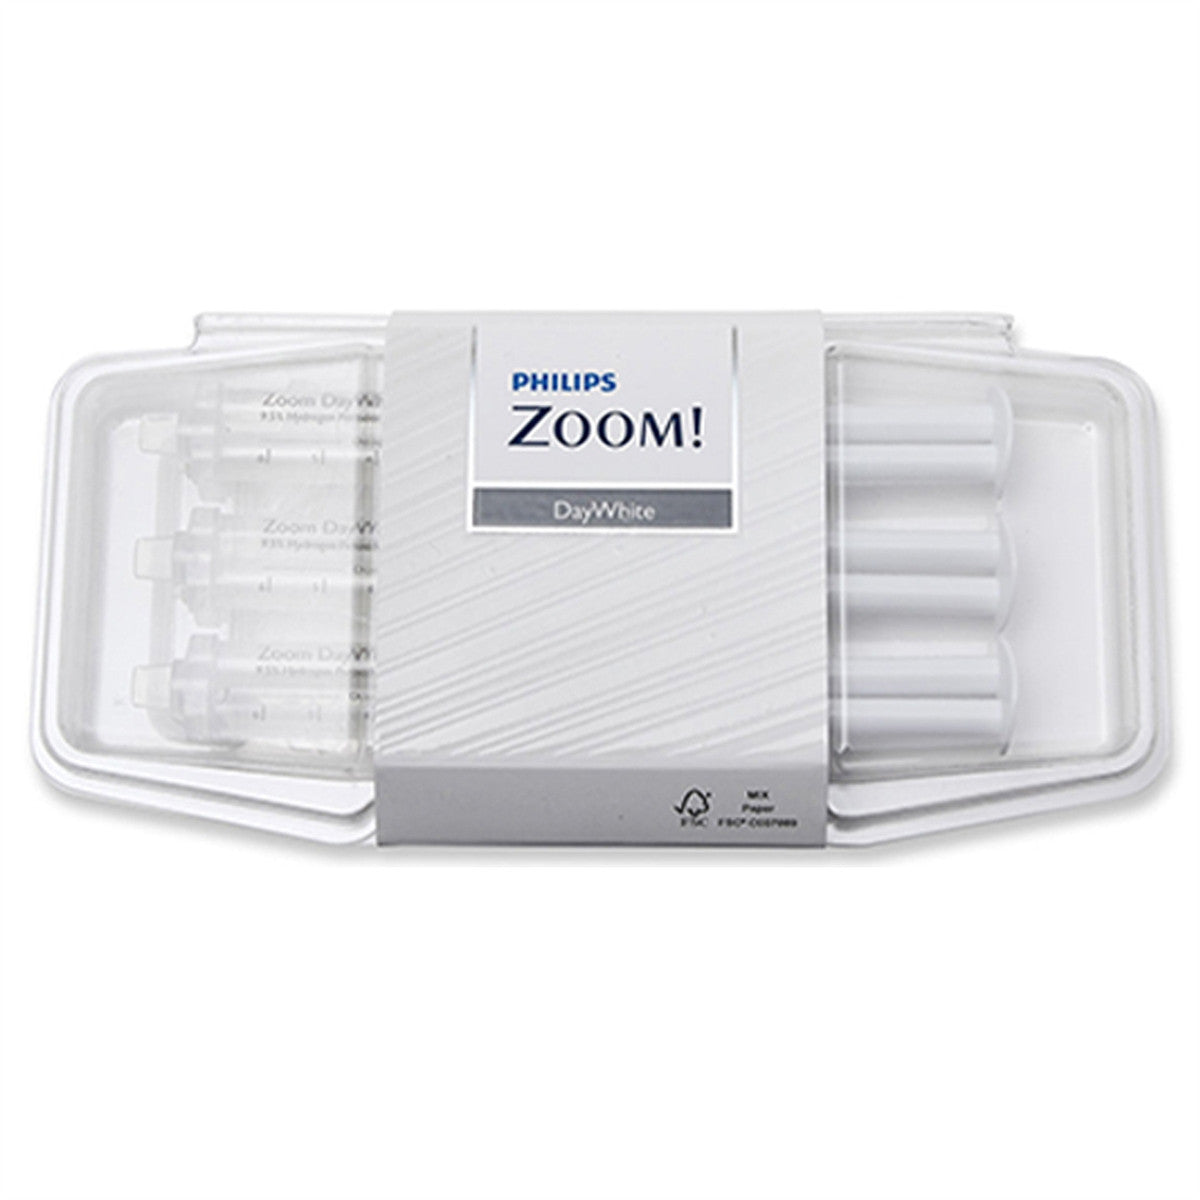 zoom daywhite 9.5 instructions